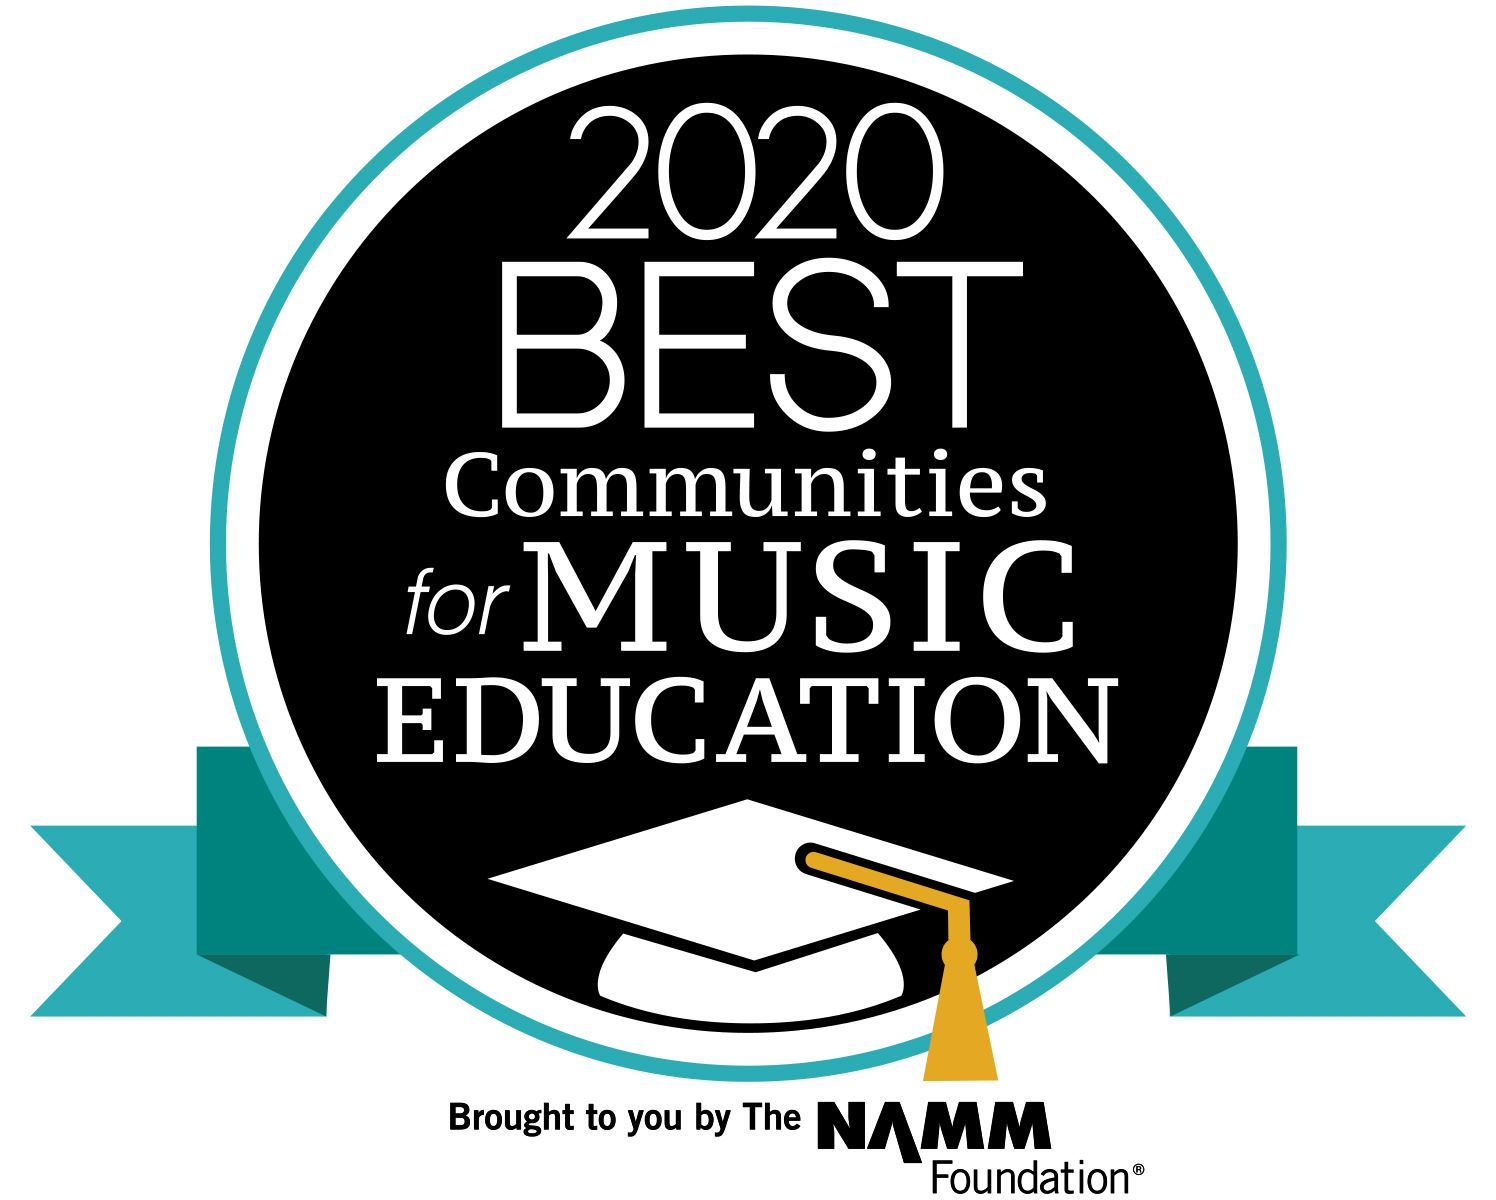 Pinellas County Performing Arts receives national recognition for outstanding music education